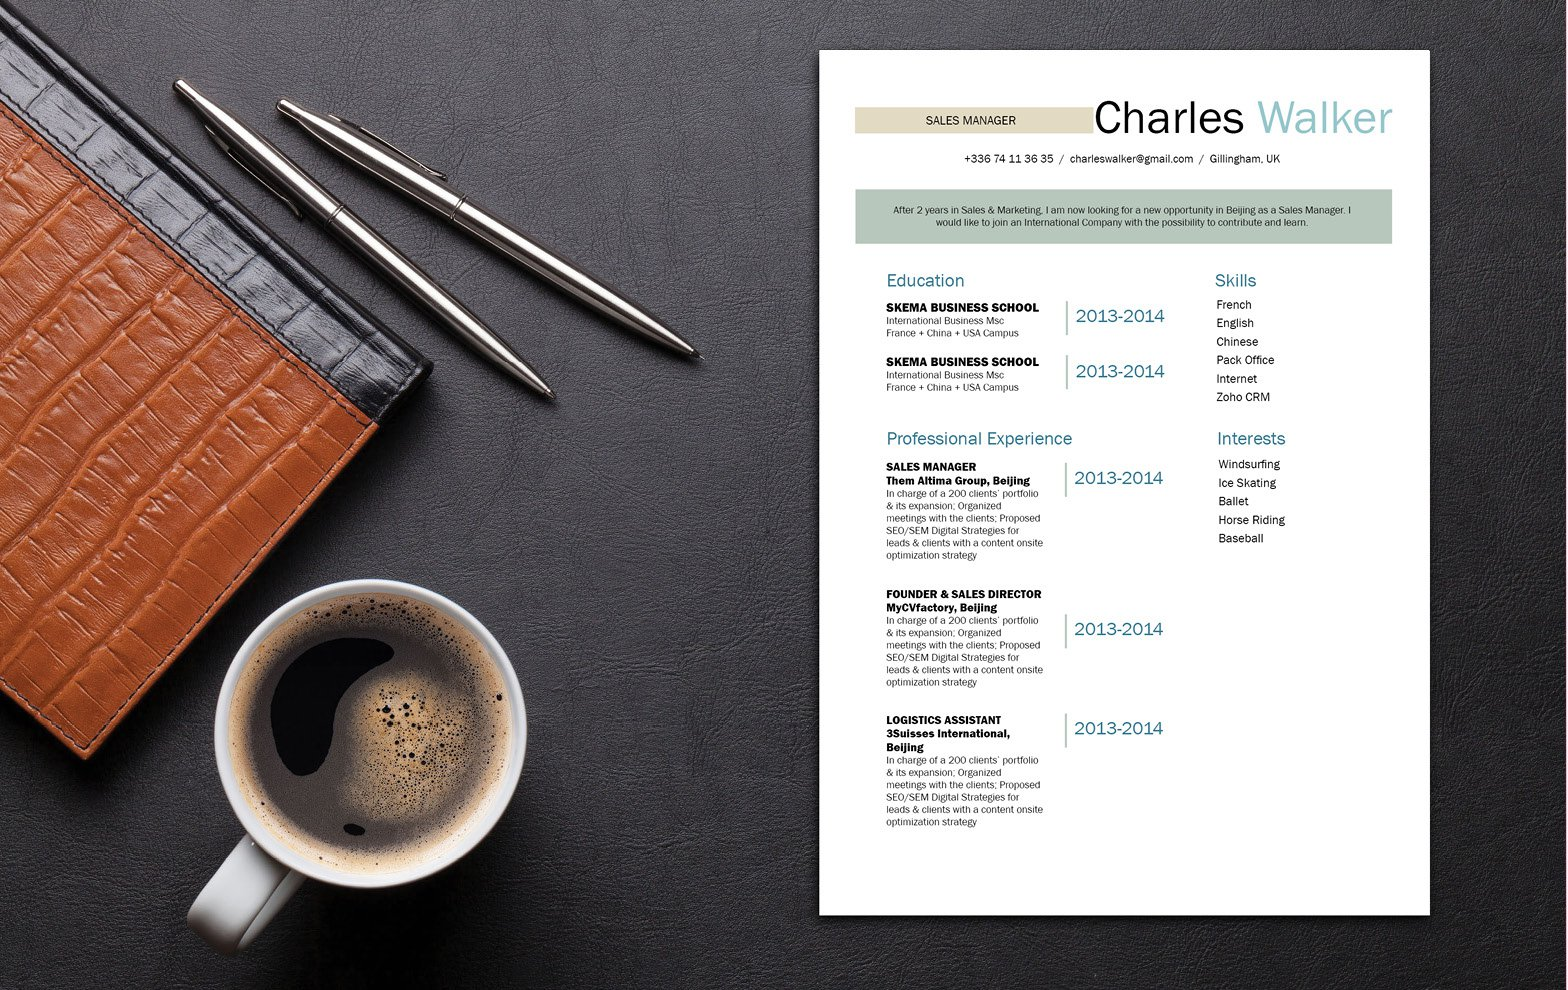 Don't let this simple resume fool you -- it has a creative and functional design that is sure to land you an interview